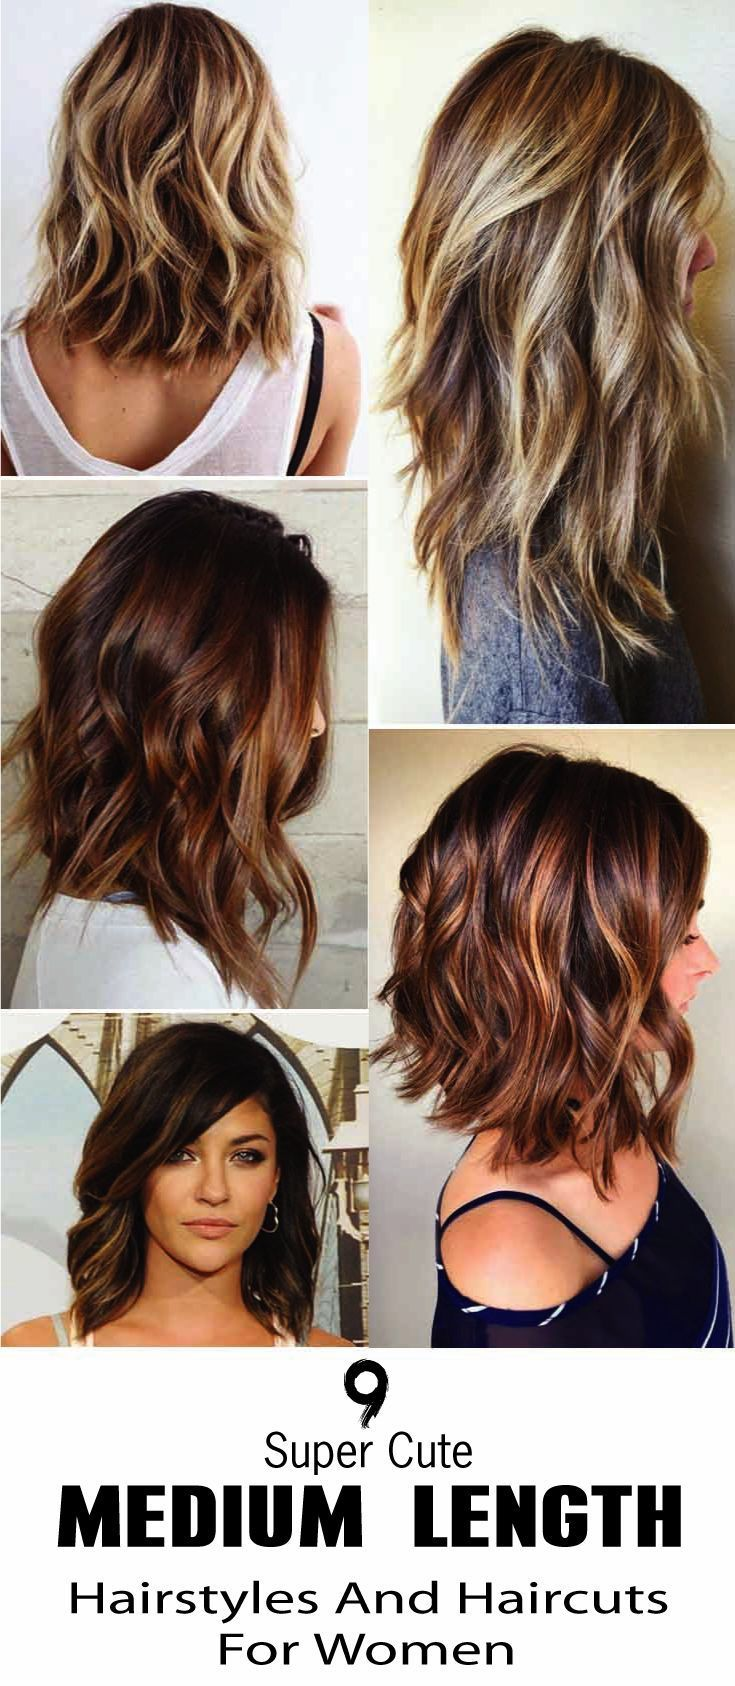 Super Cute Medium Length Hairstyles And Haircuts For Women hair